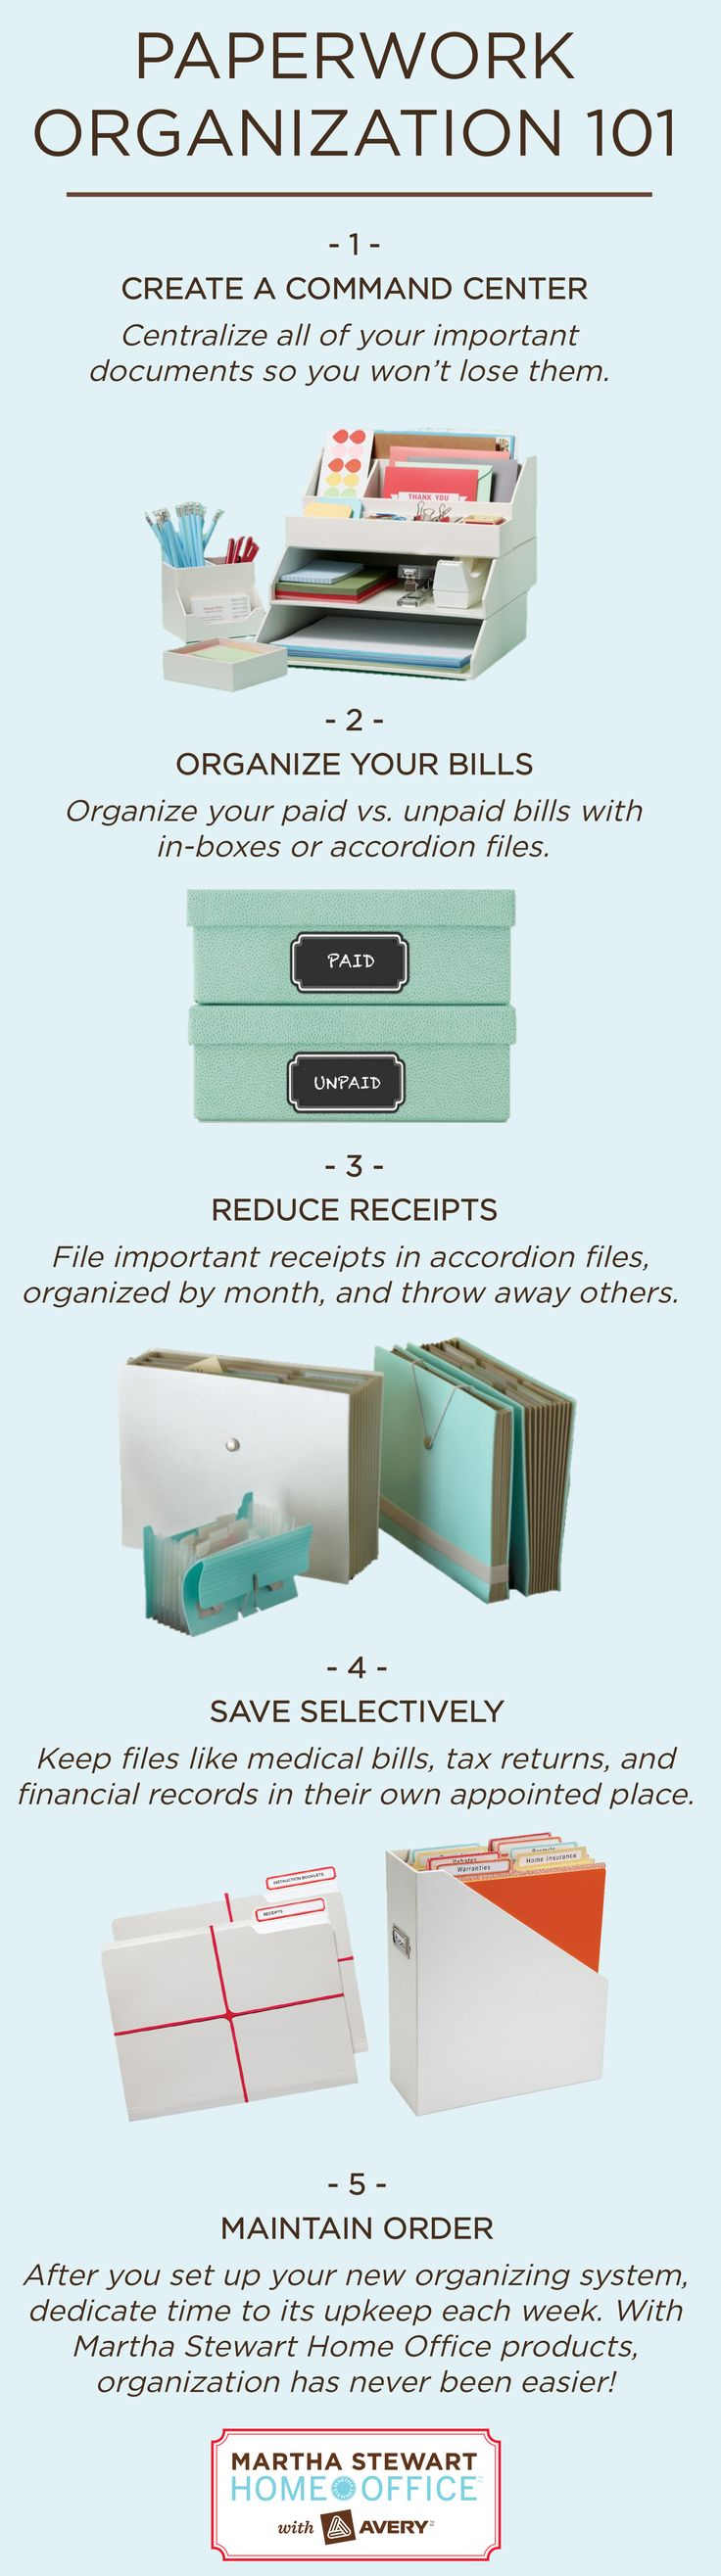 Need help with this. Paperwork Organization 101 with #MarthaStewartHomeOffice products at #Staples.